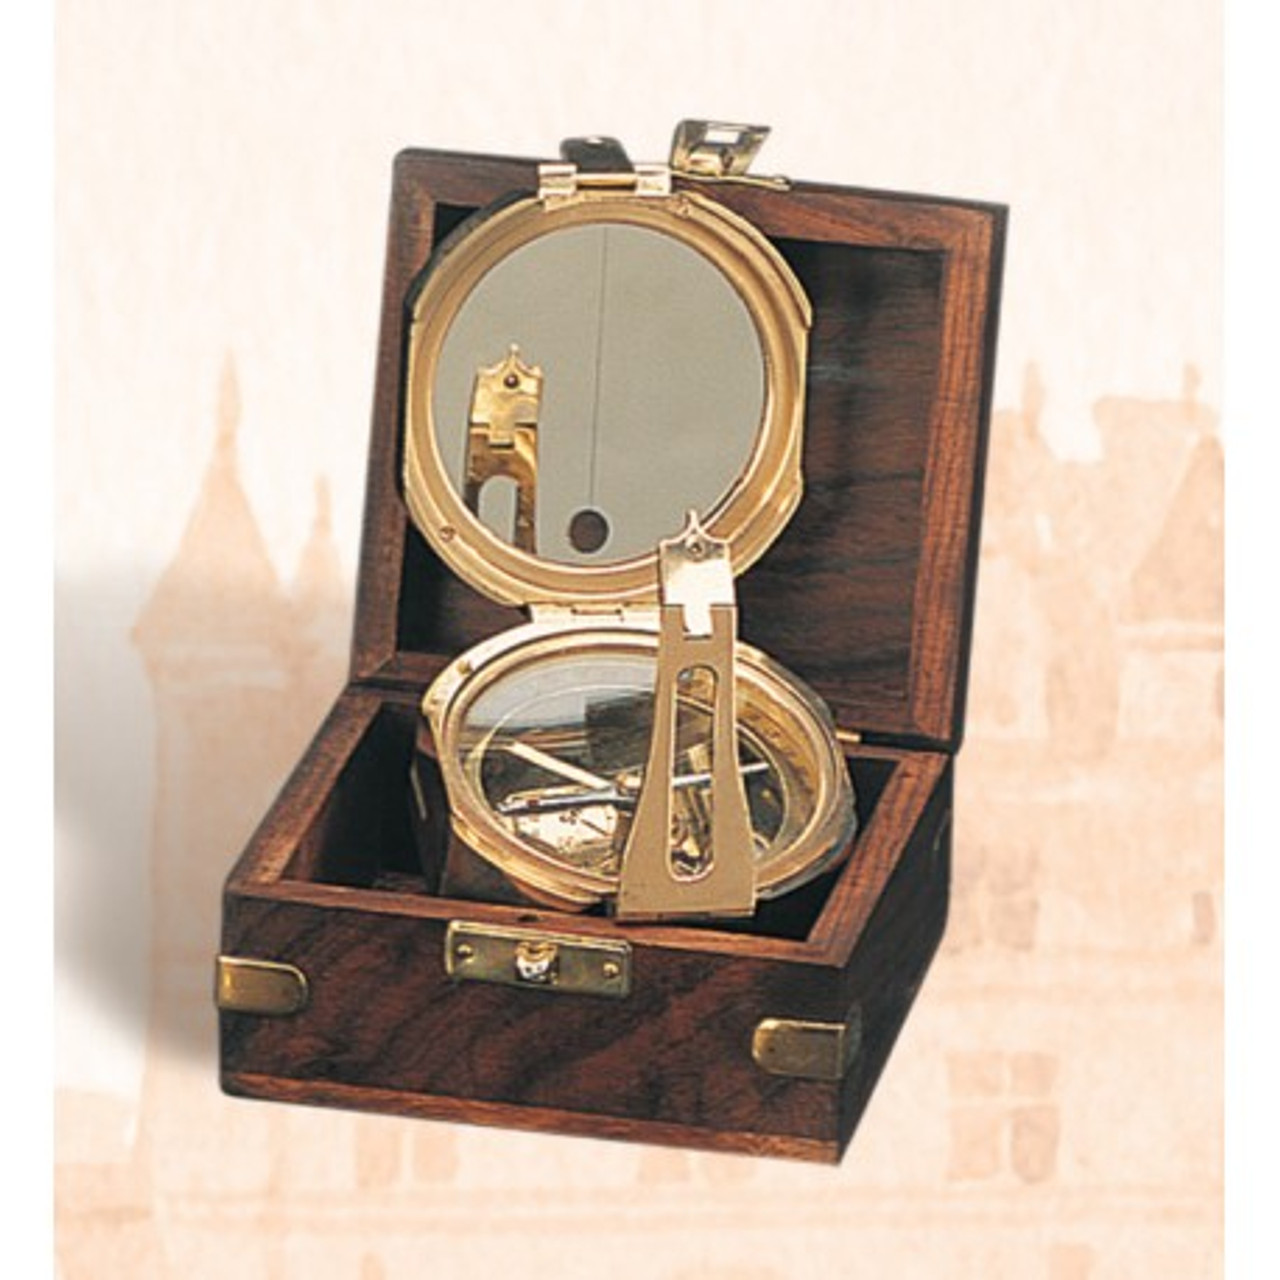 "(BW-663) 4"" Brass Brunton Compass with Wooden Display Box"